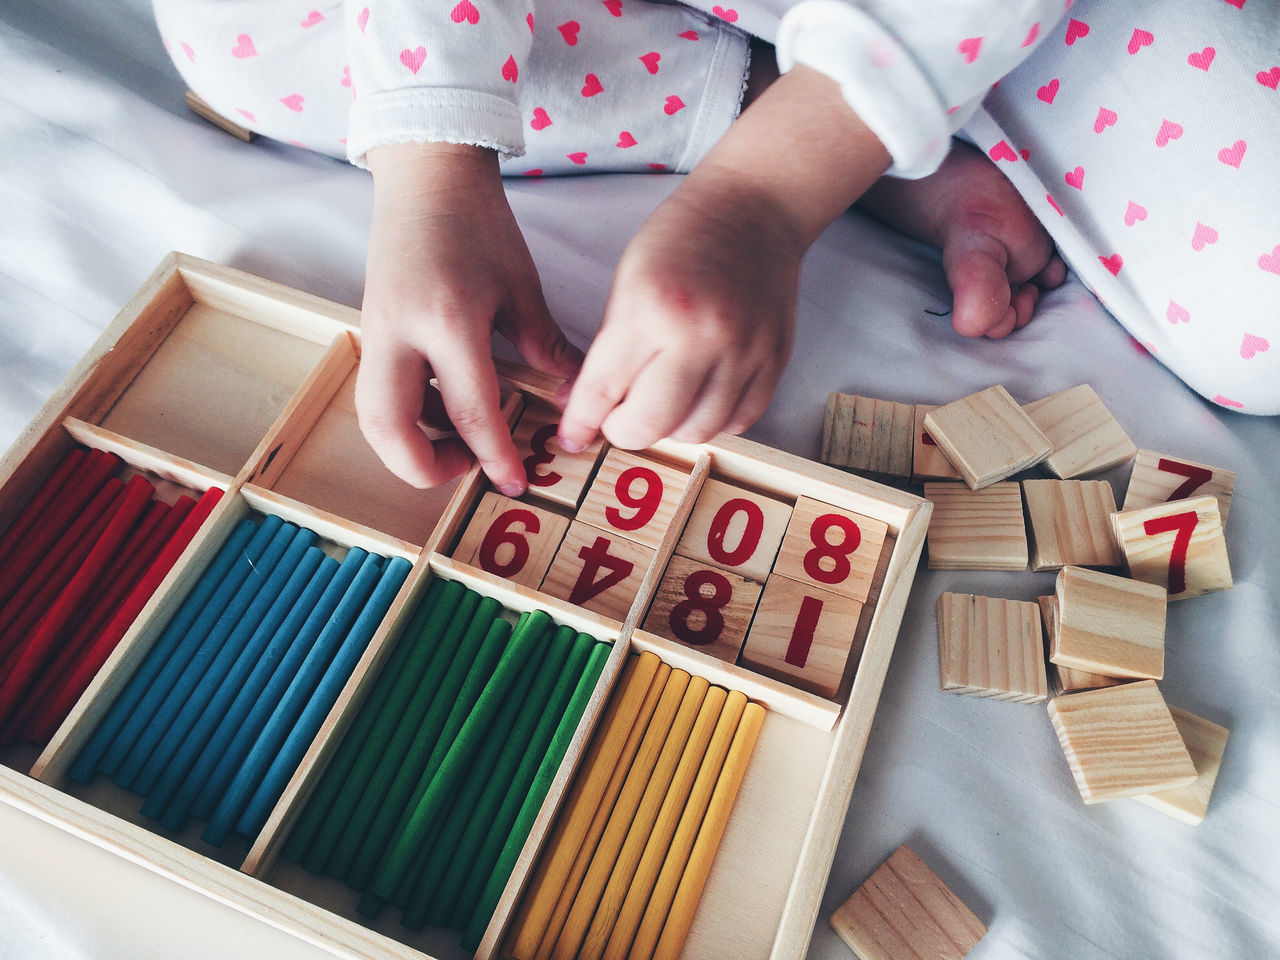 High Angle View Of Child Arranging Blocks With Number In Box On Bed